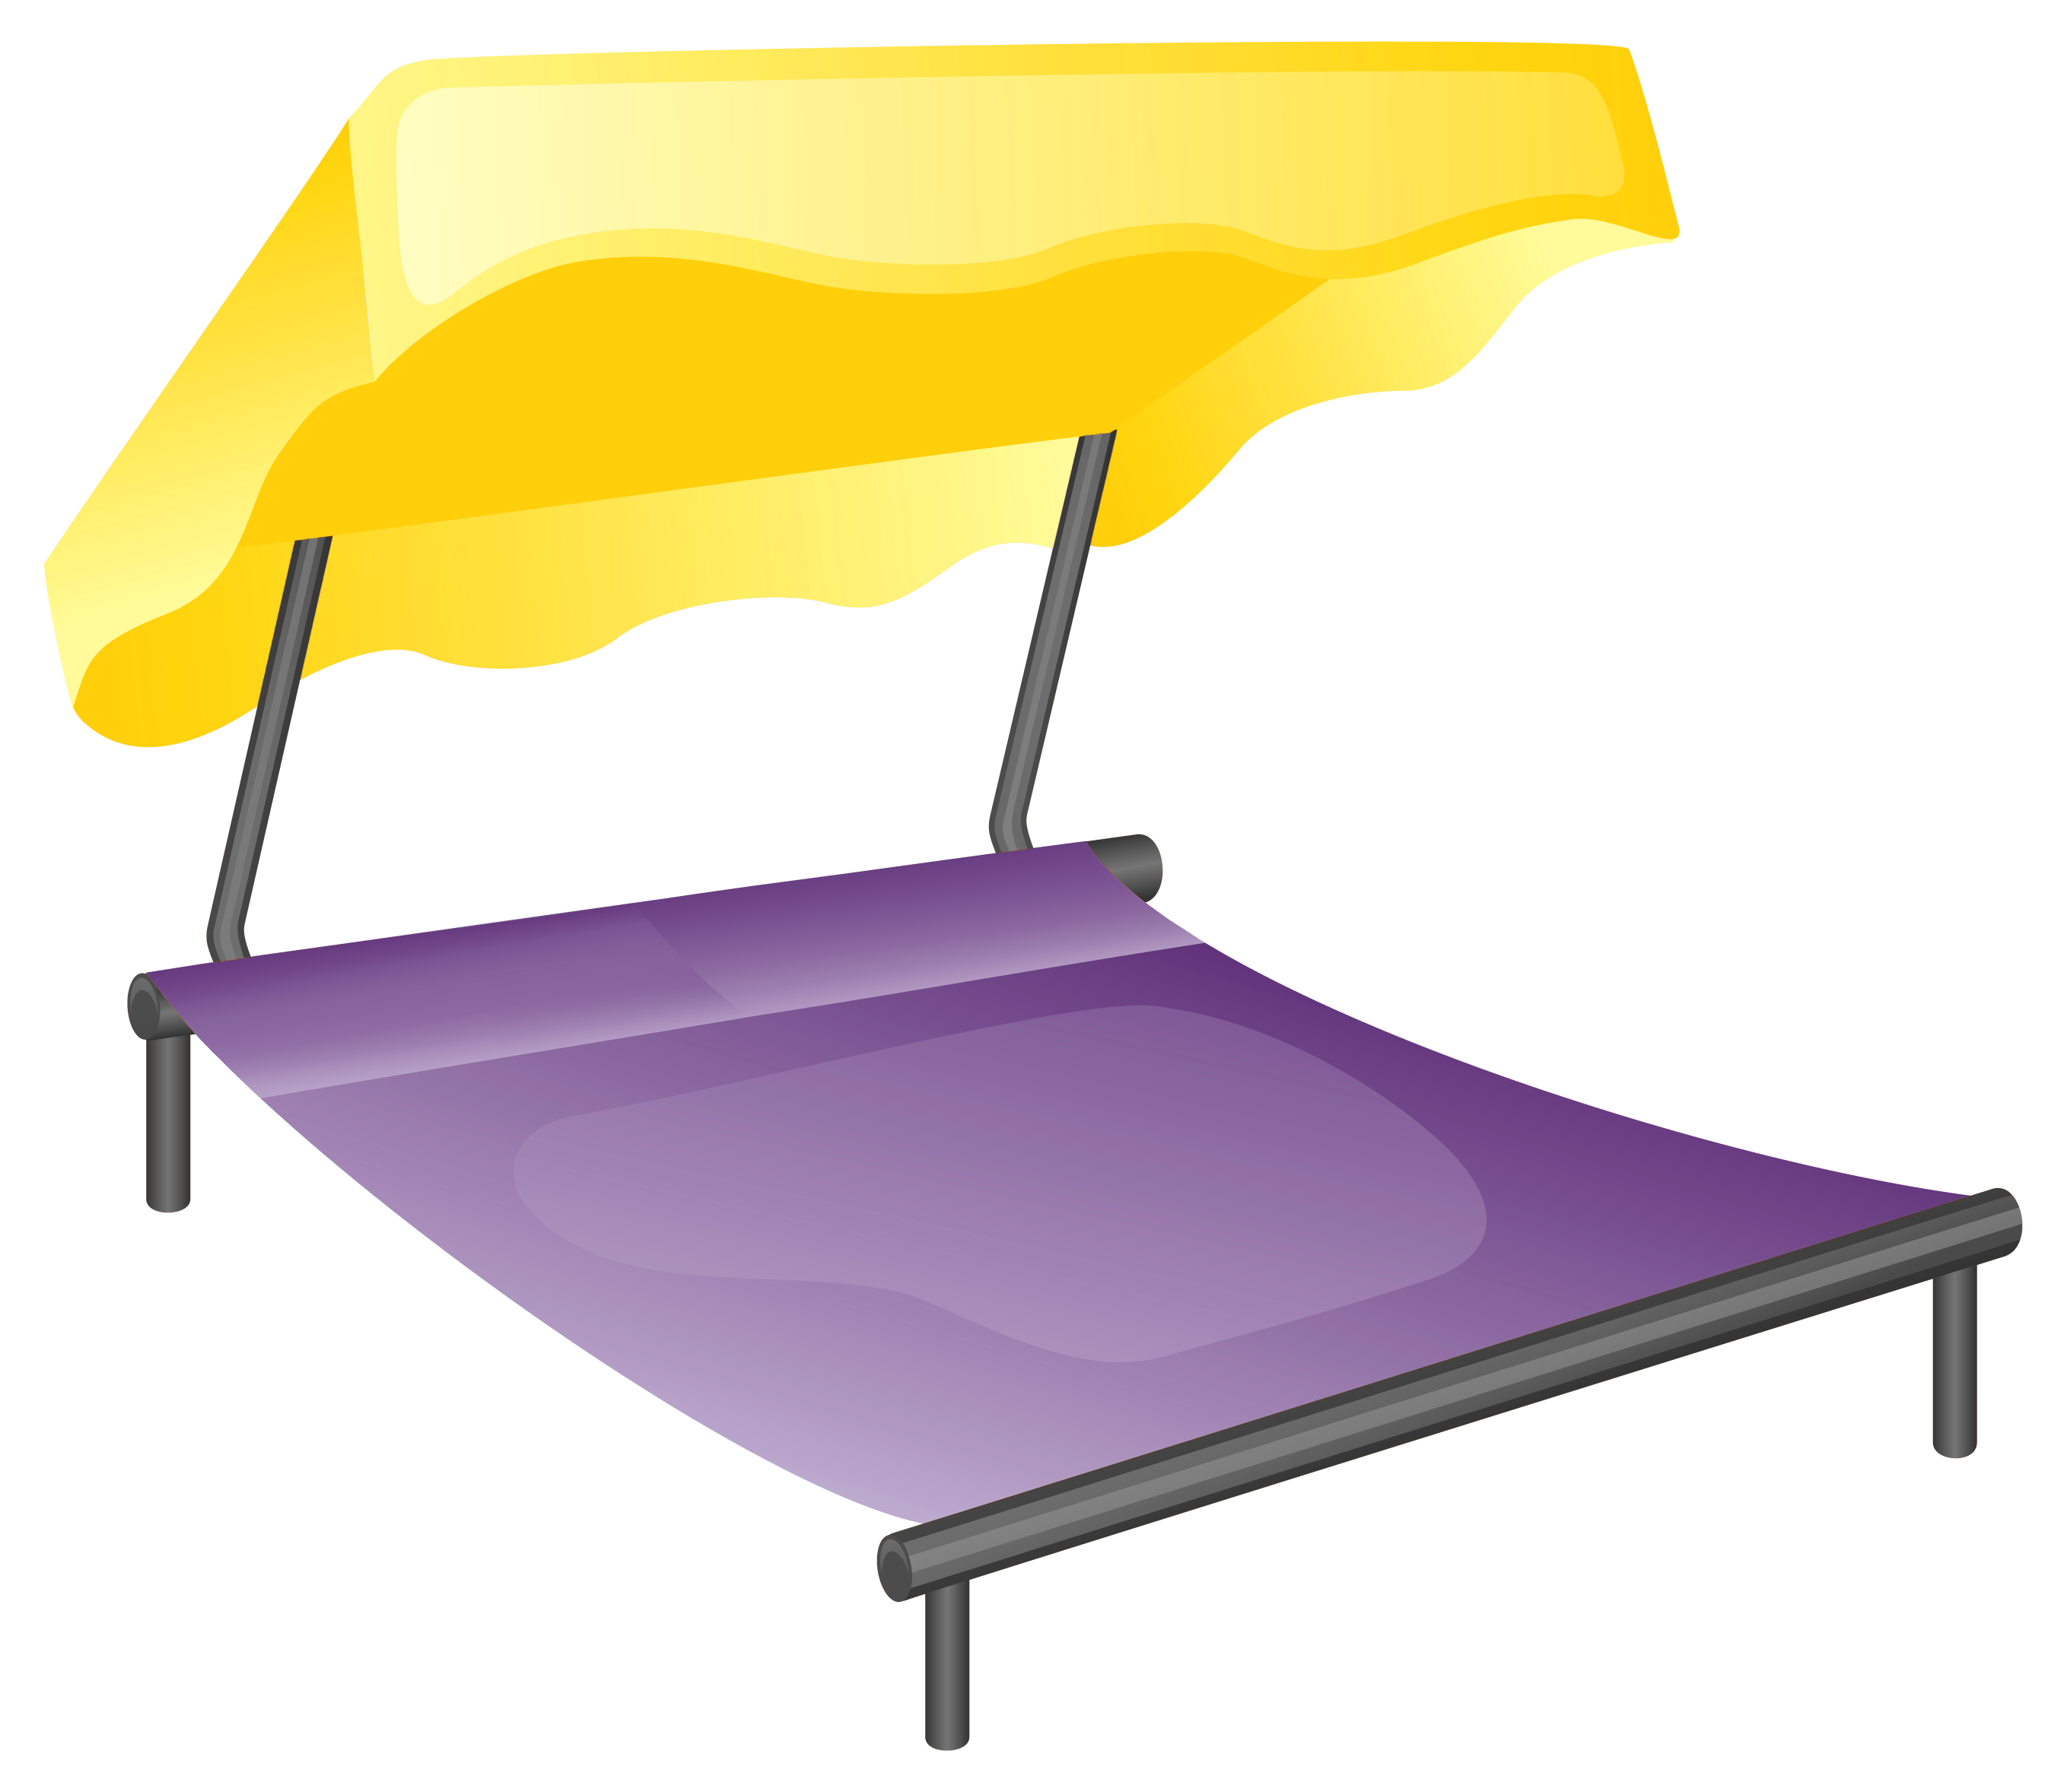 Vector furniture bed. Clipart graphics illustrations free